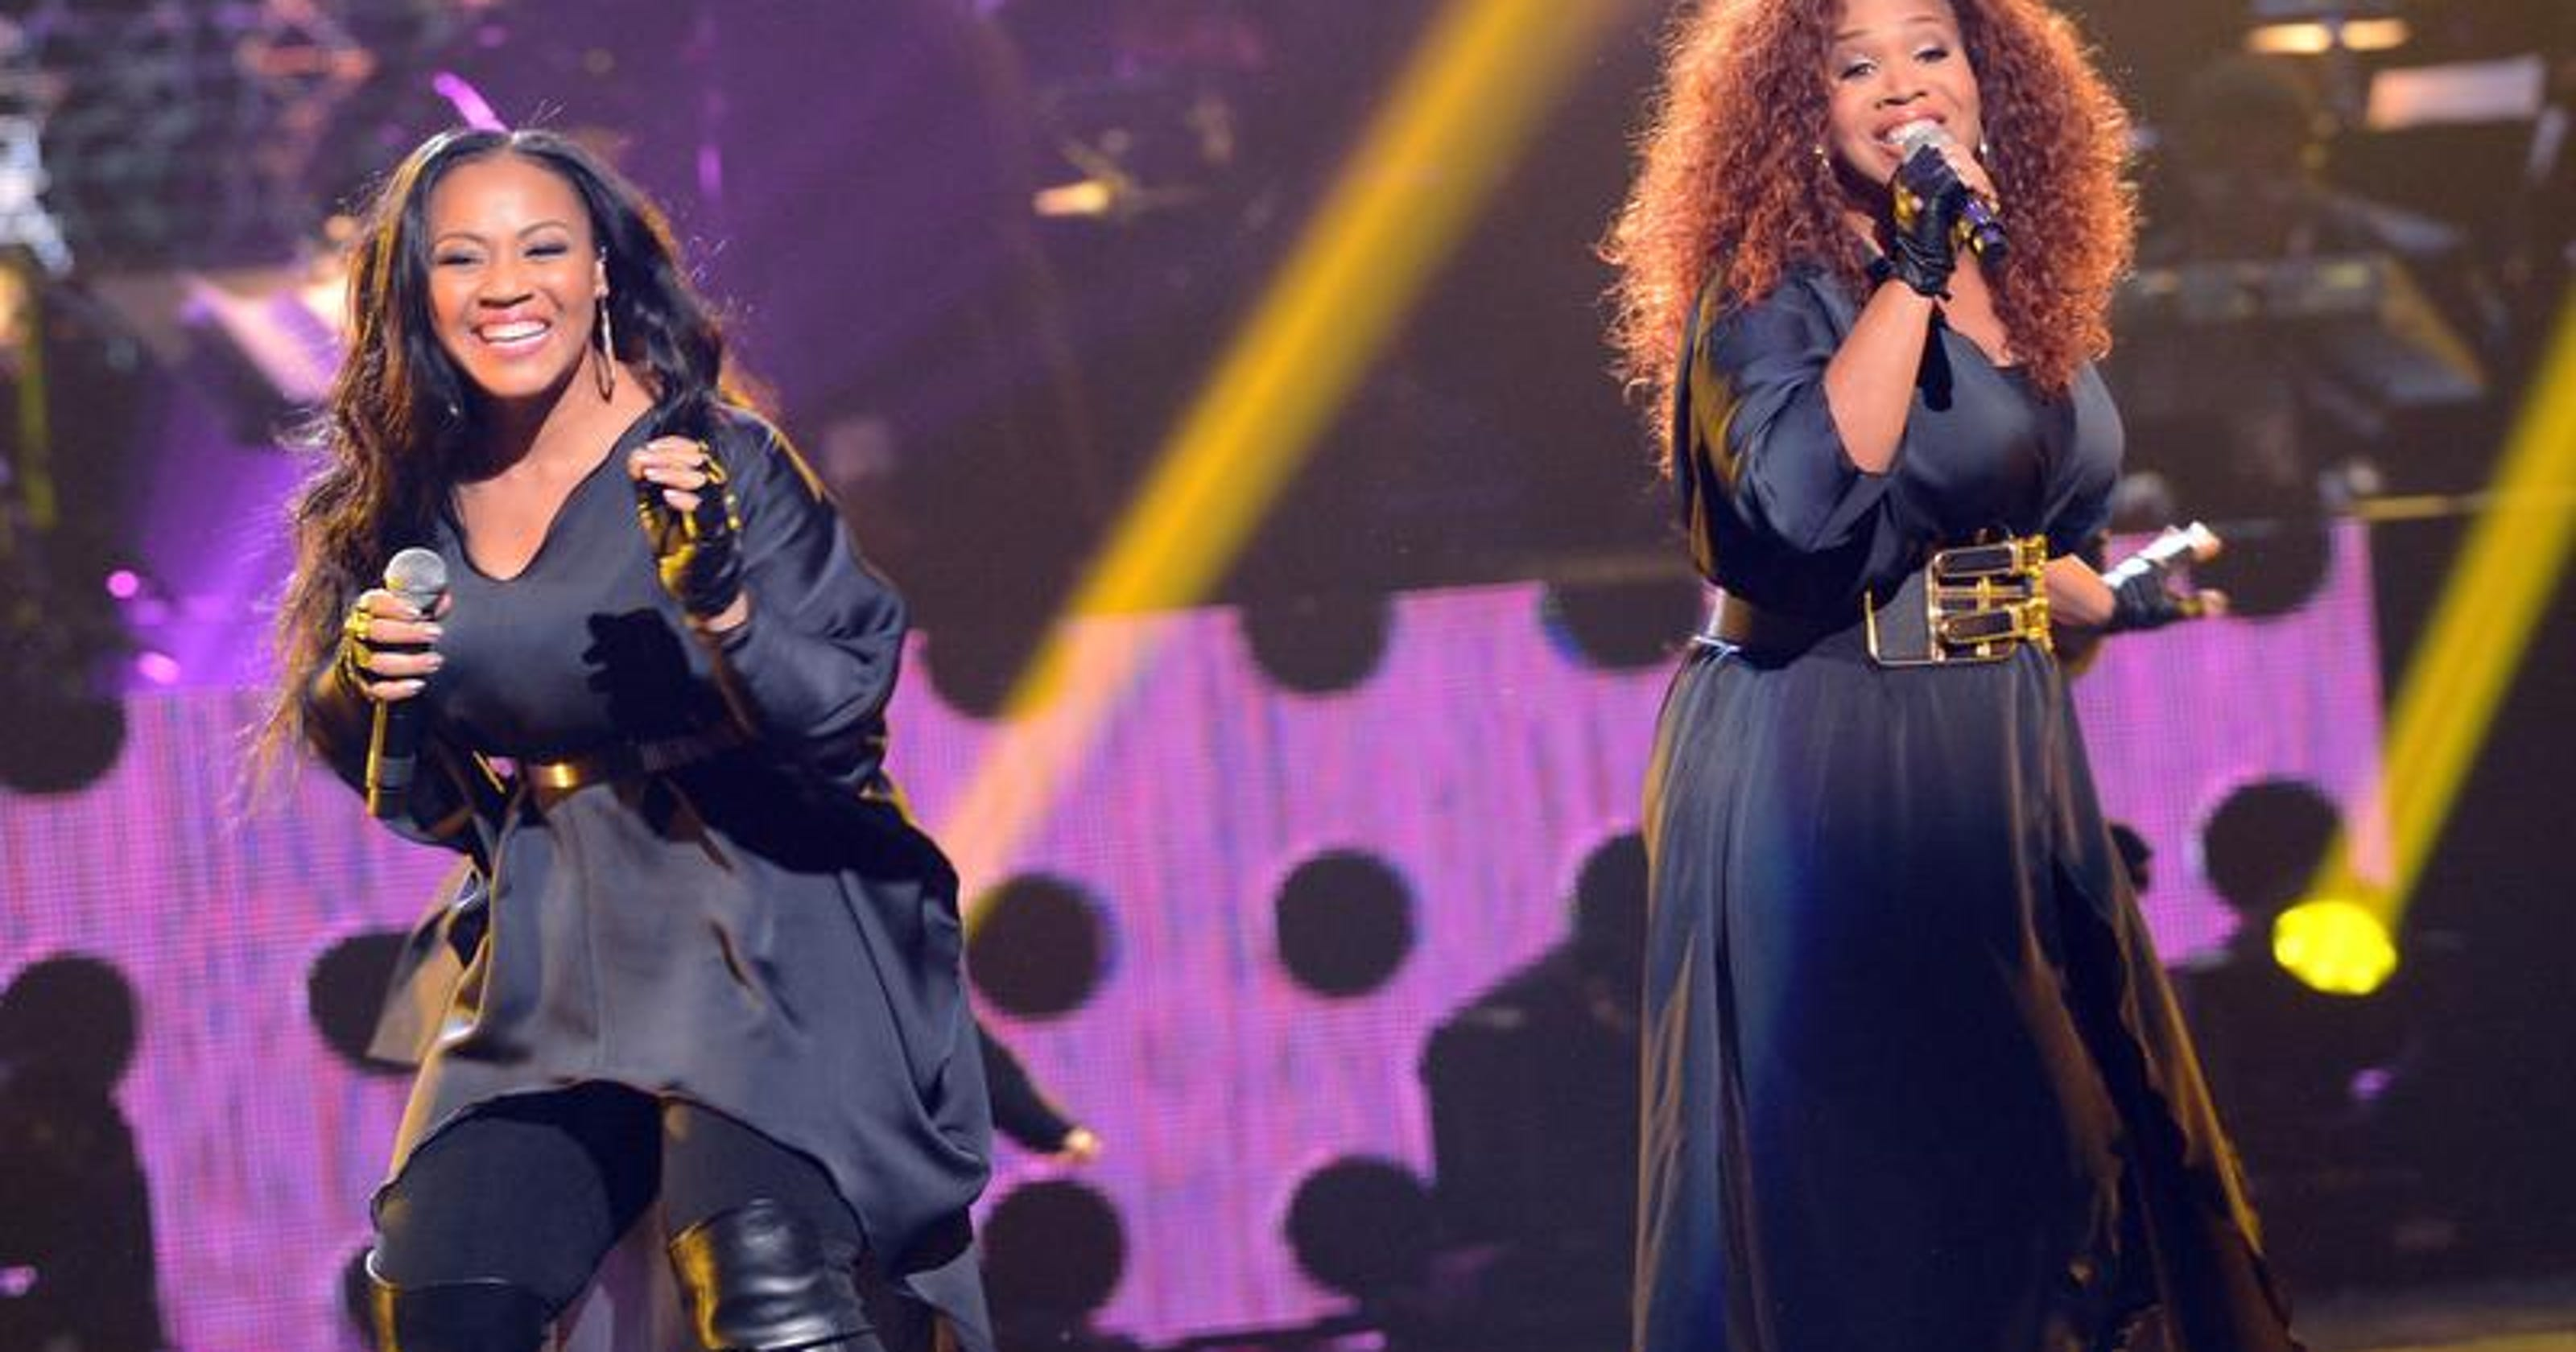 Gospel Singer of Mary Mary Erica Campbell Plants Church in